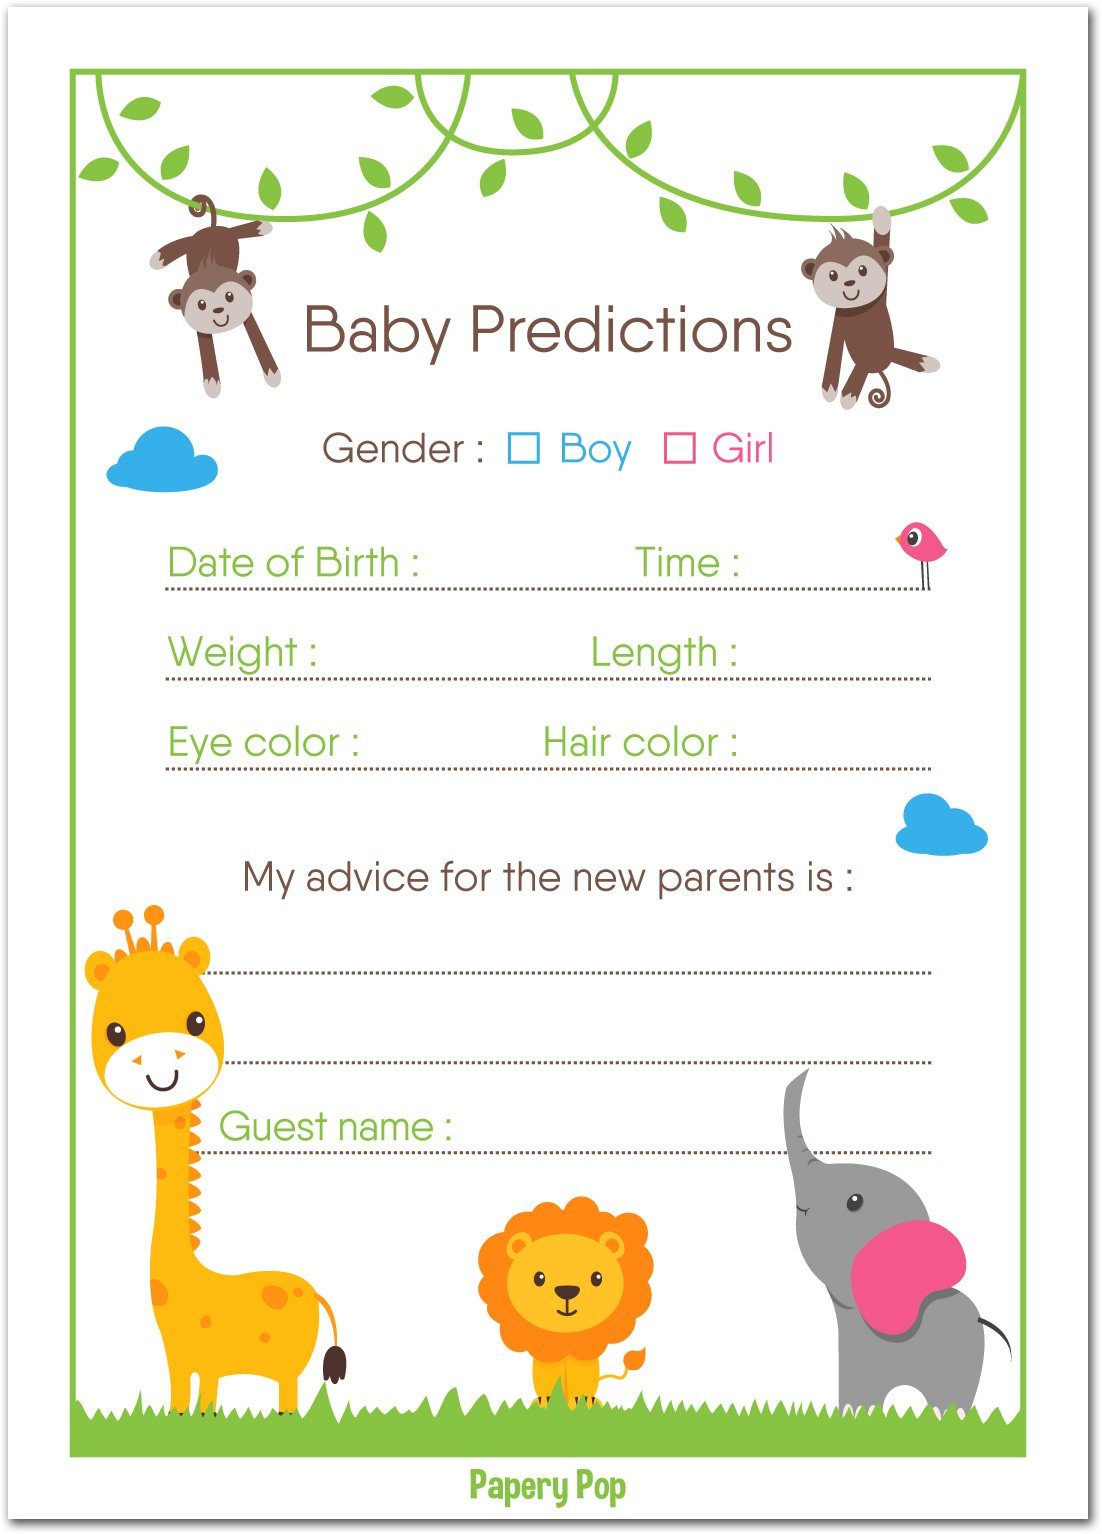 30 Baby Shower Prediction and Advice Cards, Boy or Girl - Baby Shower Games Decorations Activities Supplies Invitations - Safari Jungle Zoo Animals